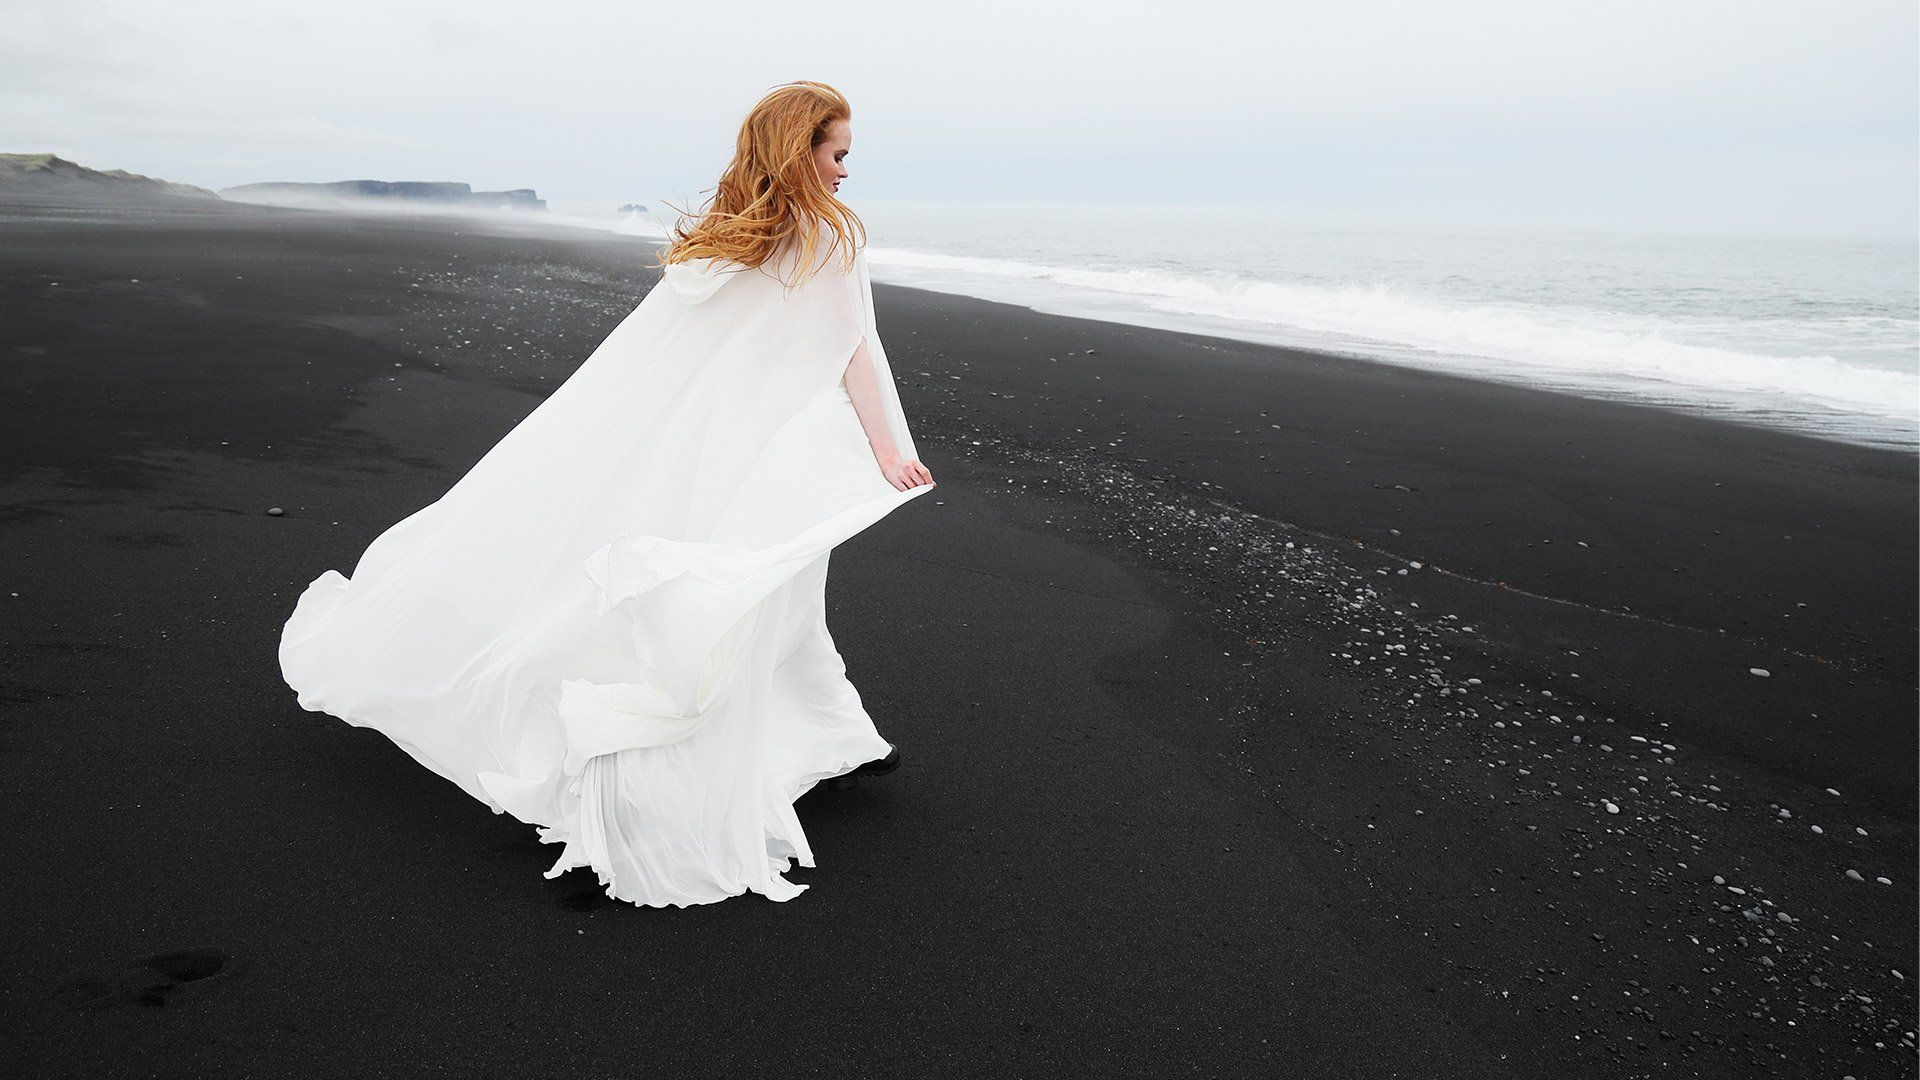 Female in wedding dress on Iceland beach shot using Canon EOS R and RF 24-105mm F4L IS USM